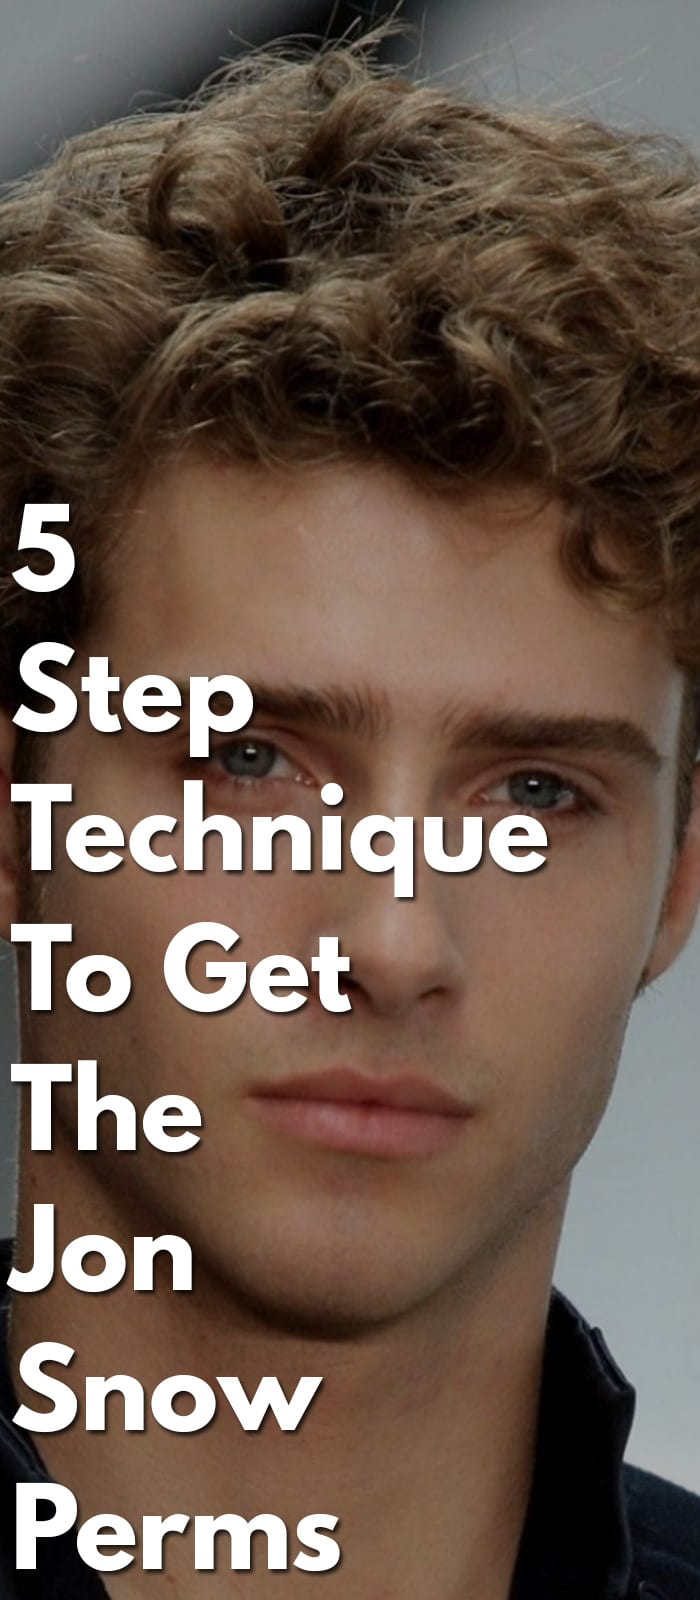 5-Step-Technique-To-Get-The-Jon-Snow-Perms....